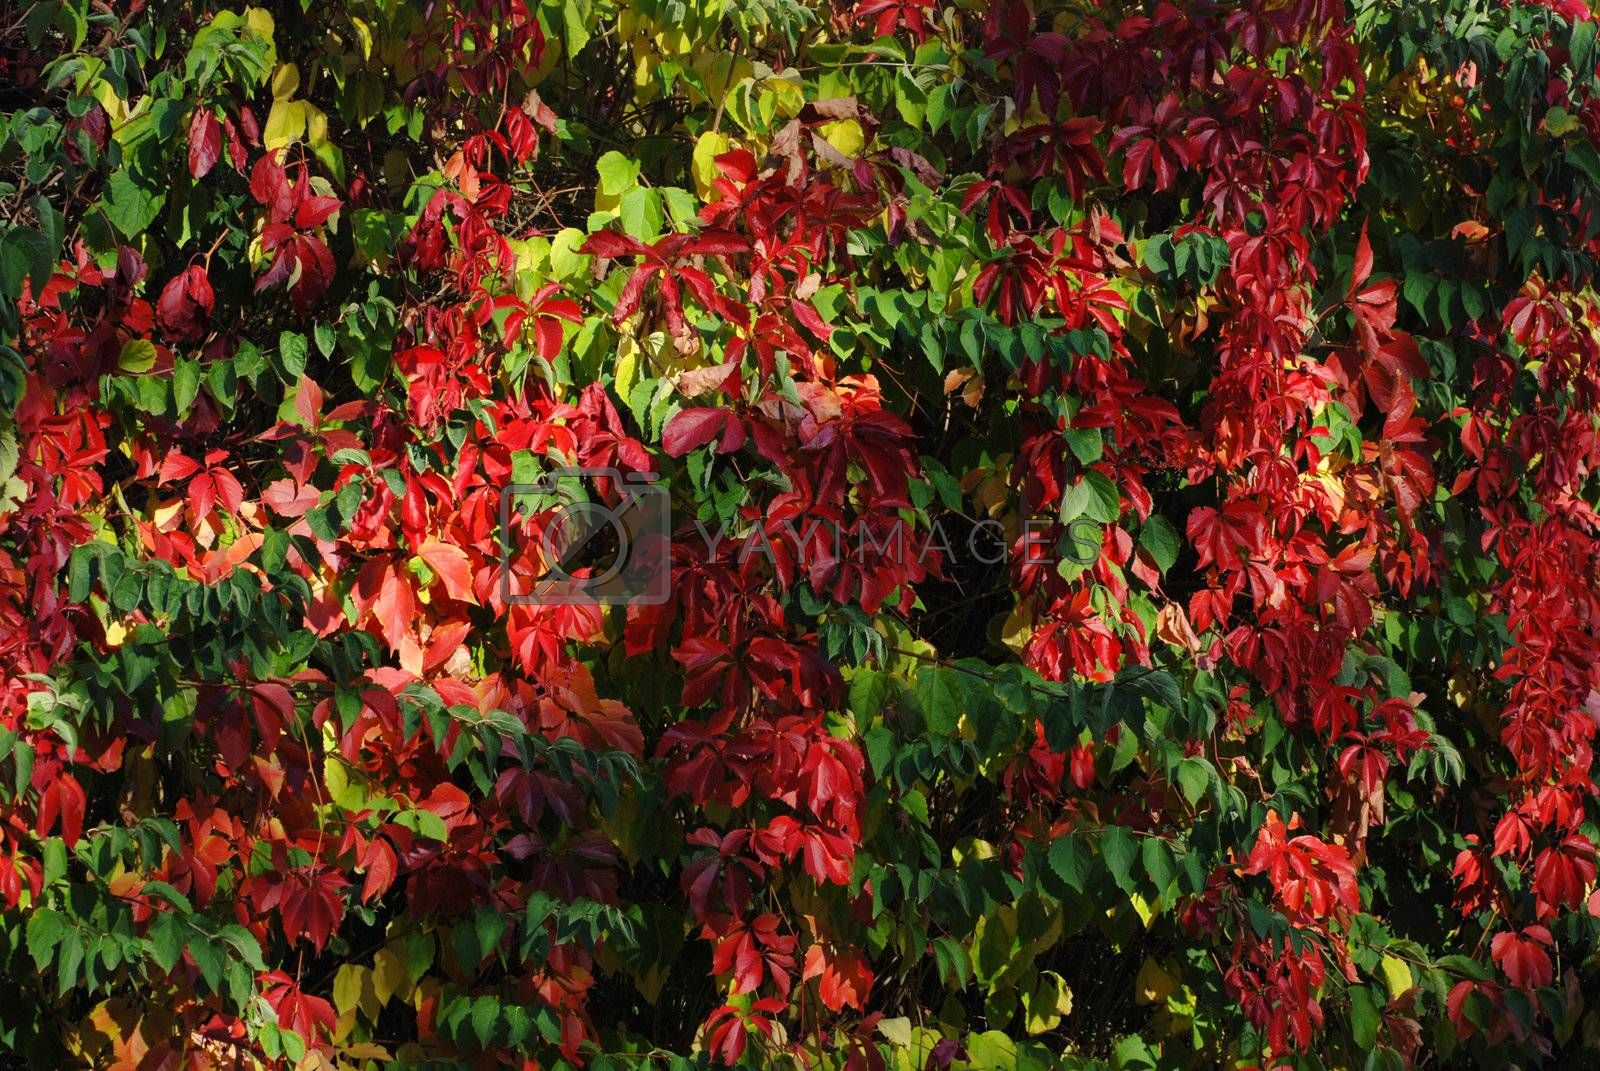 Red boston ivy leaves by wojciechkozlowski